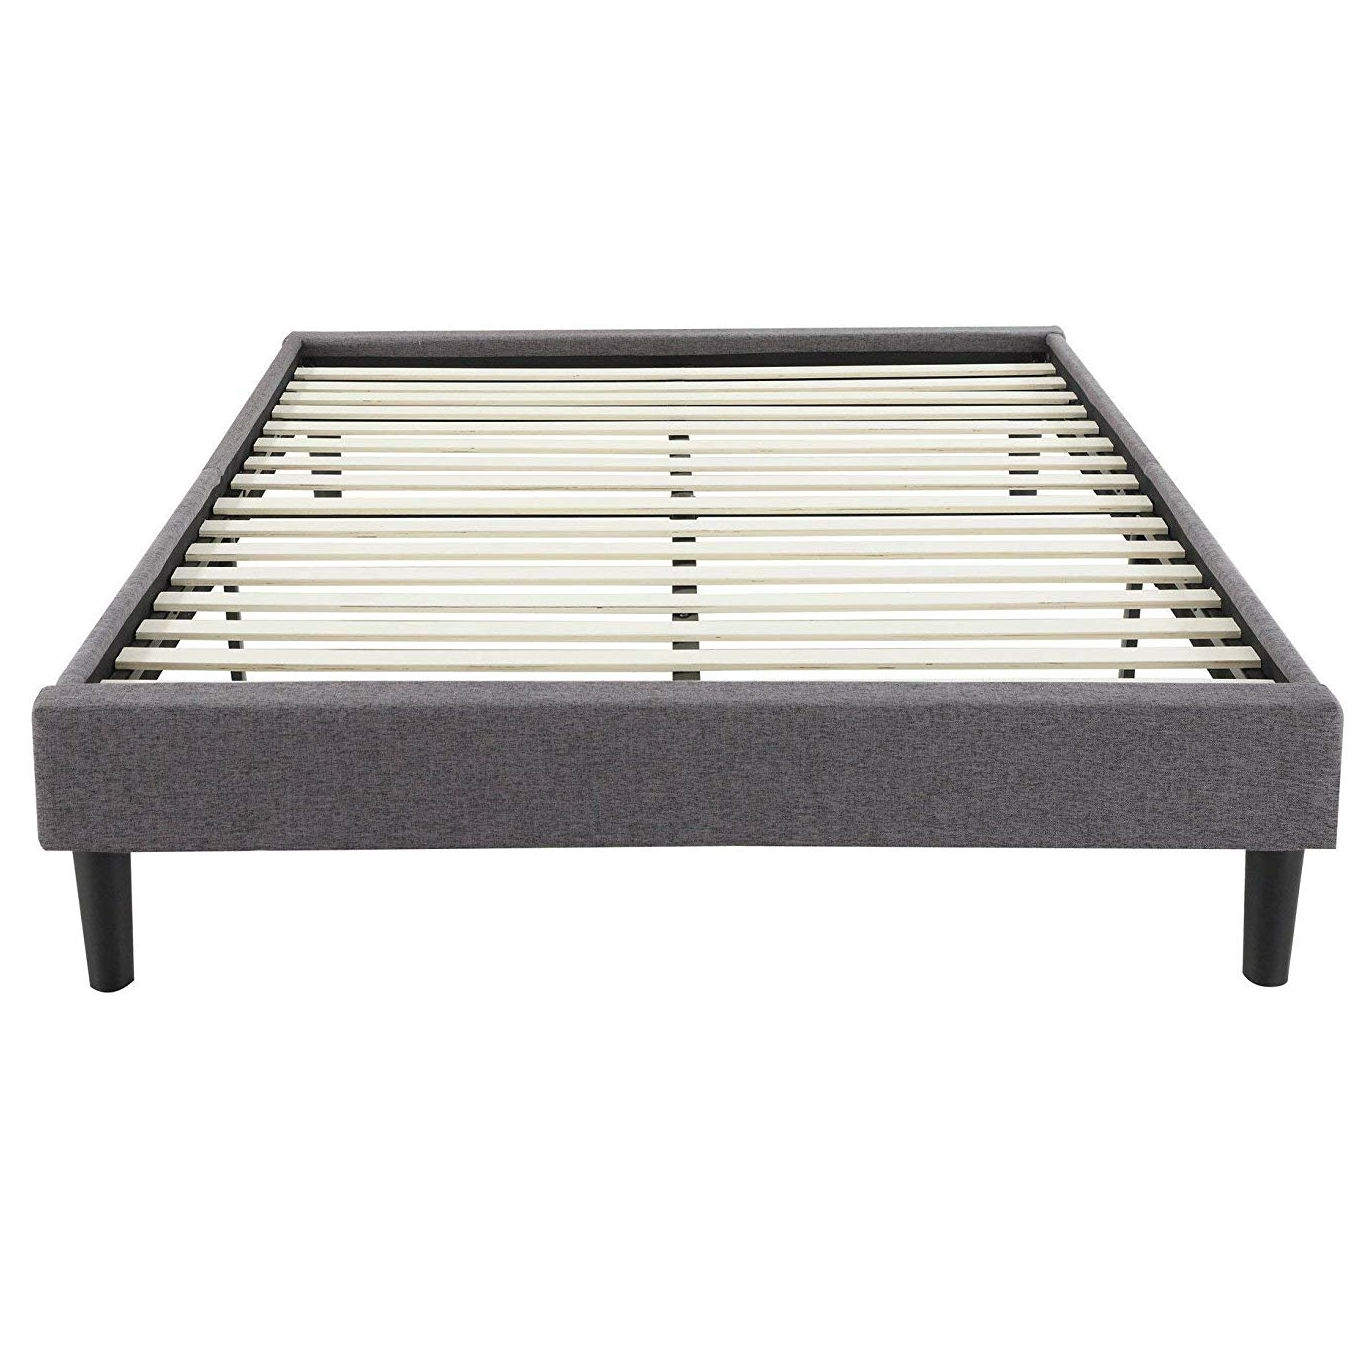 Full Size Upholstered Platform Bed Frame With Padded Grey Upholstery Fastfurnishings Com